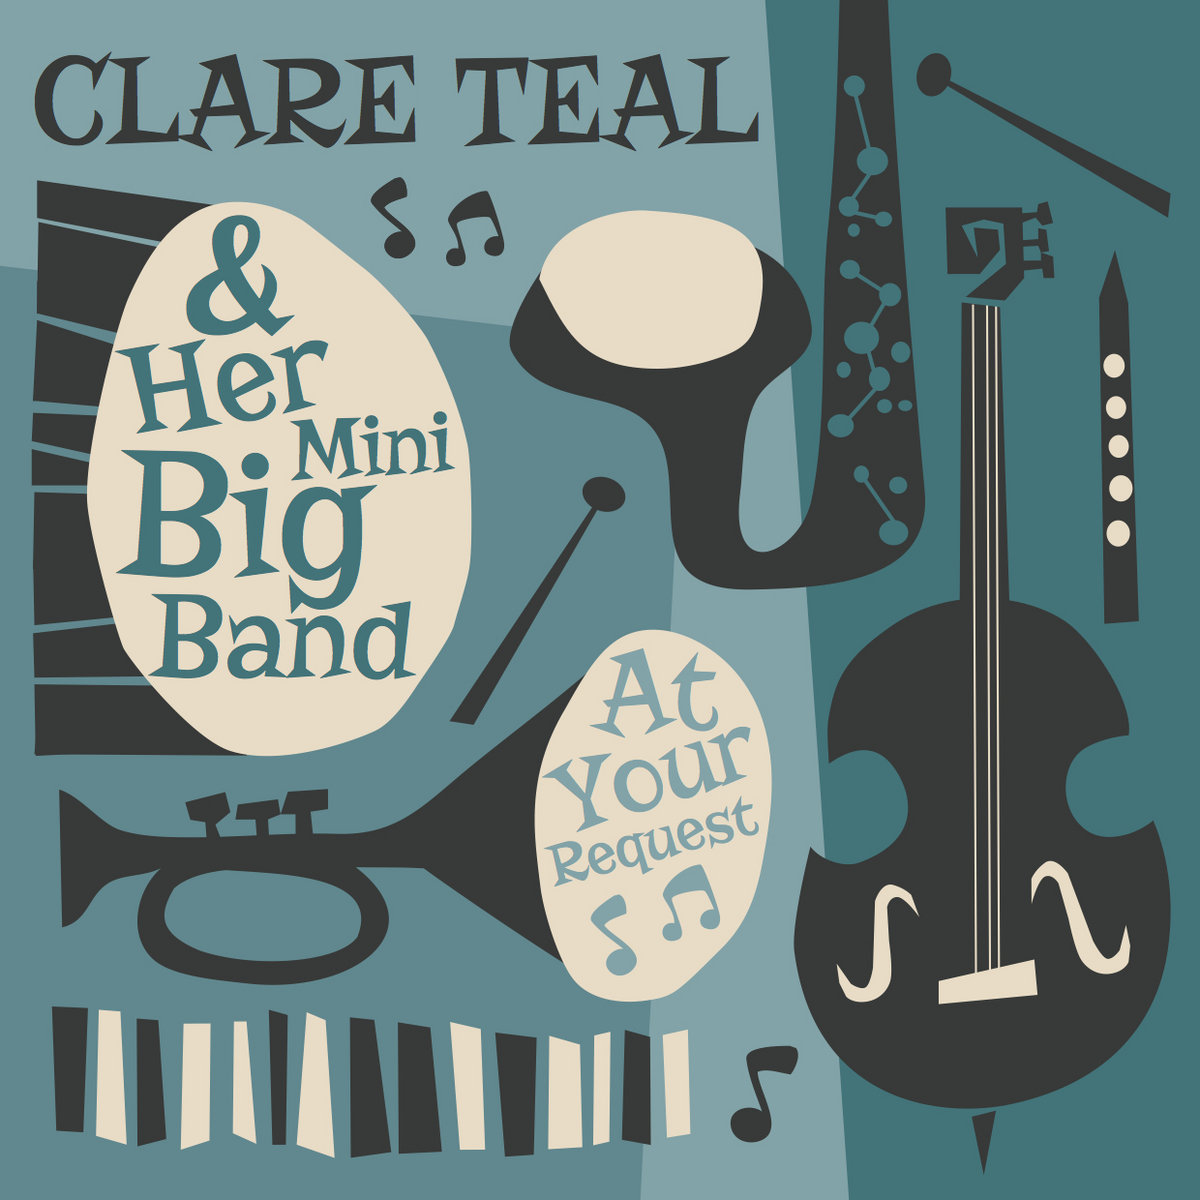 Clare Teal & Her Mini Big Band - At Your Request (2015)